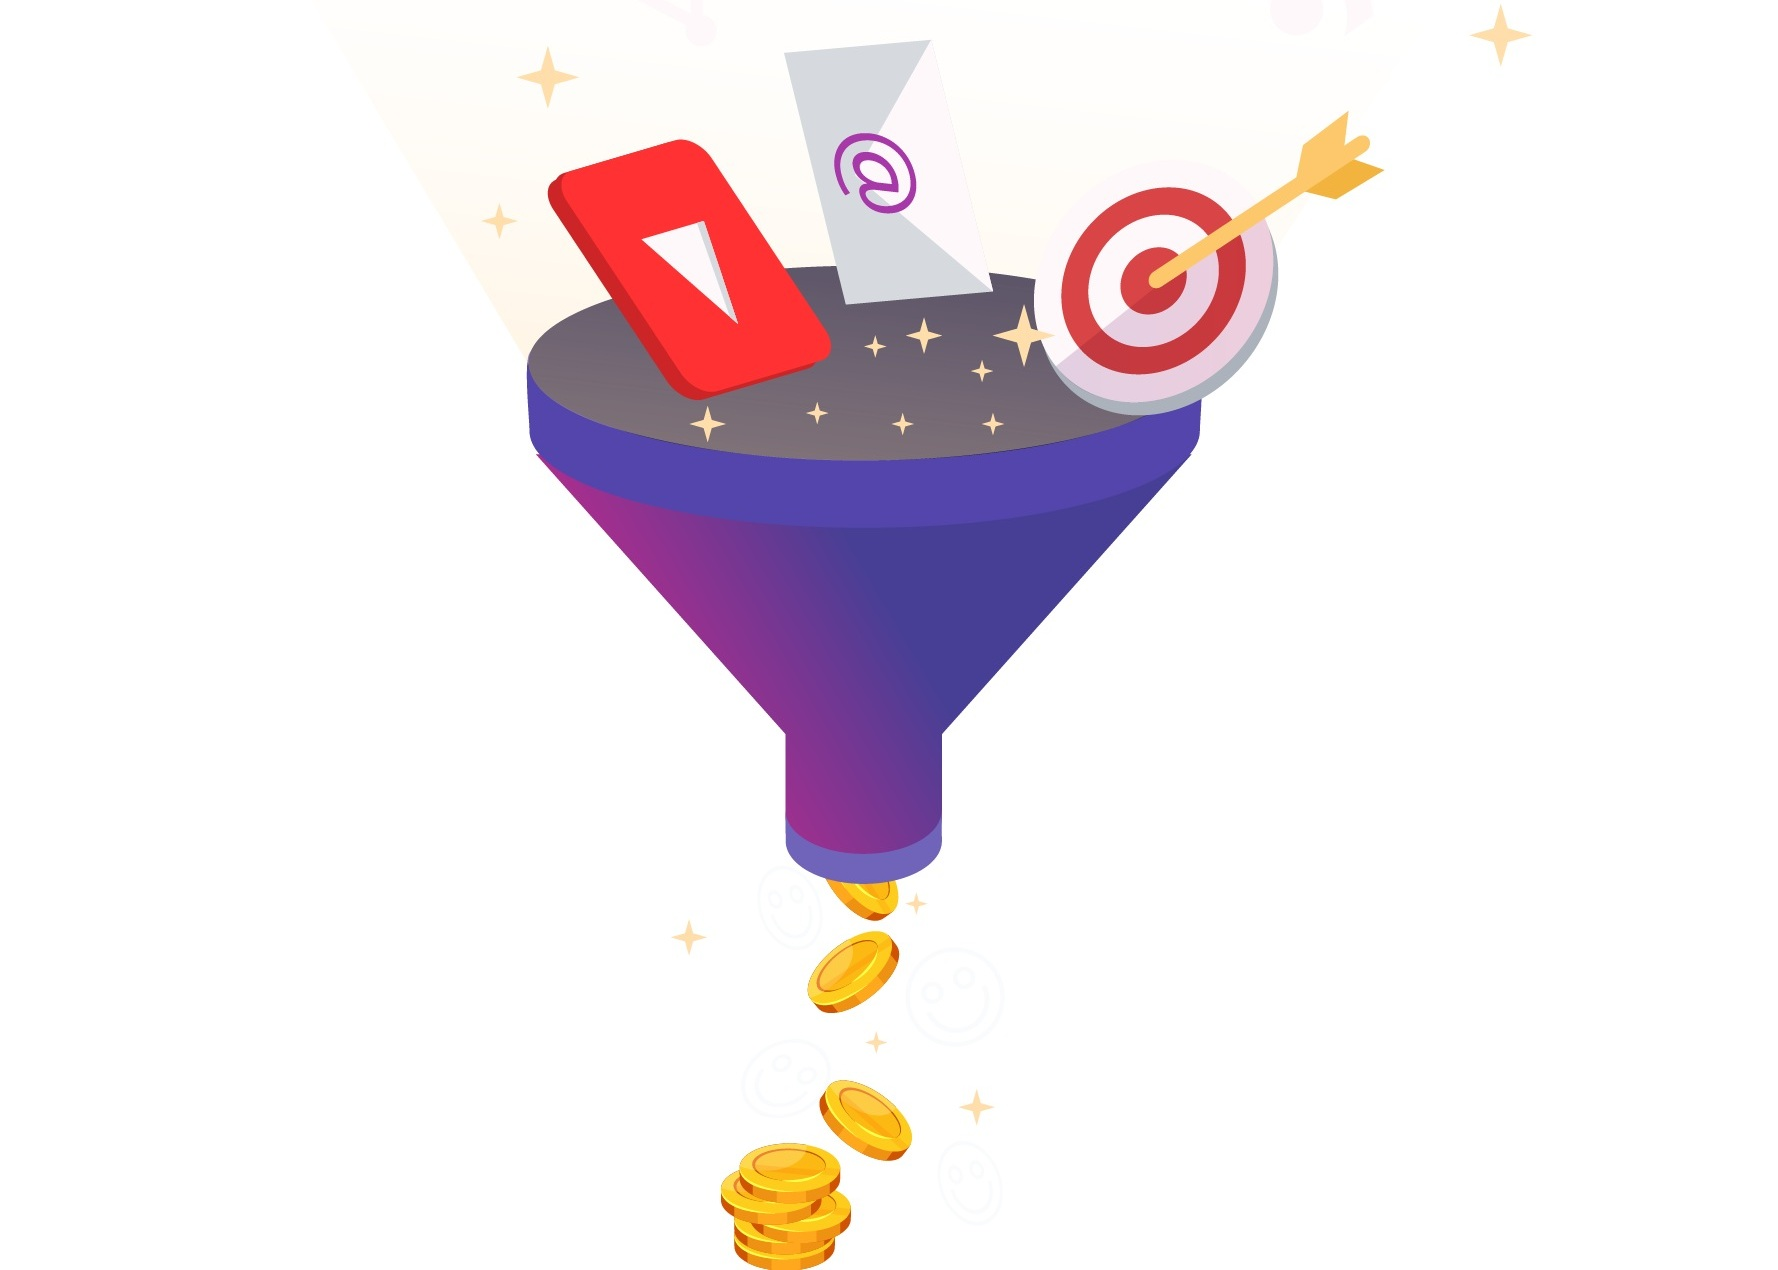 Sales Funnels - With over 4 billion active users online, our sales funnels reaches an enormous audience.Our experienced team of digital marketing experts completely understand attribution models, AI, algorithms, and know how to best use them to maximize results for your business needs.